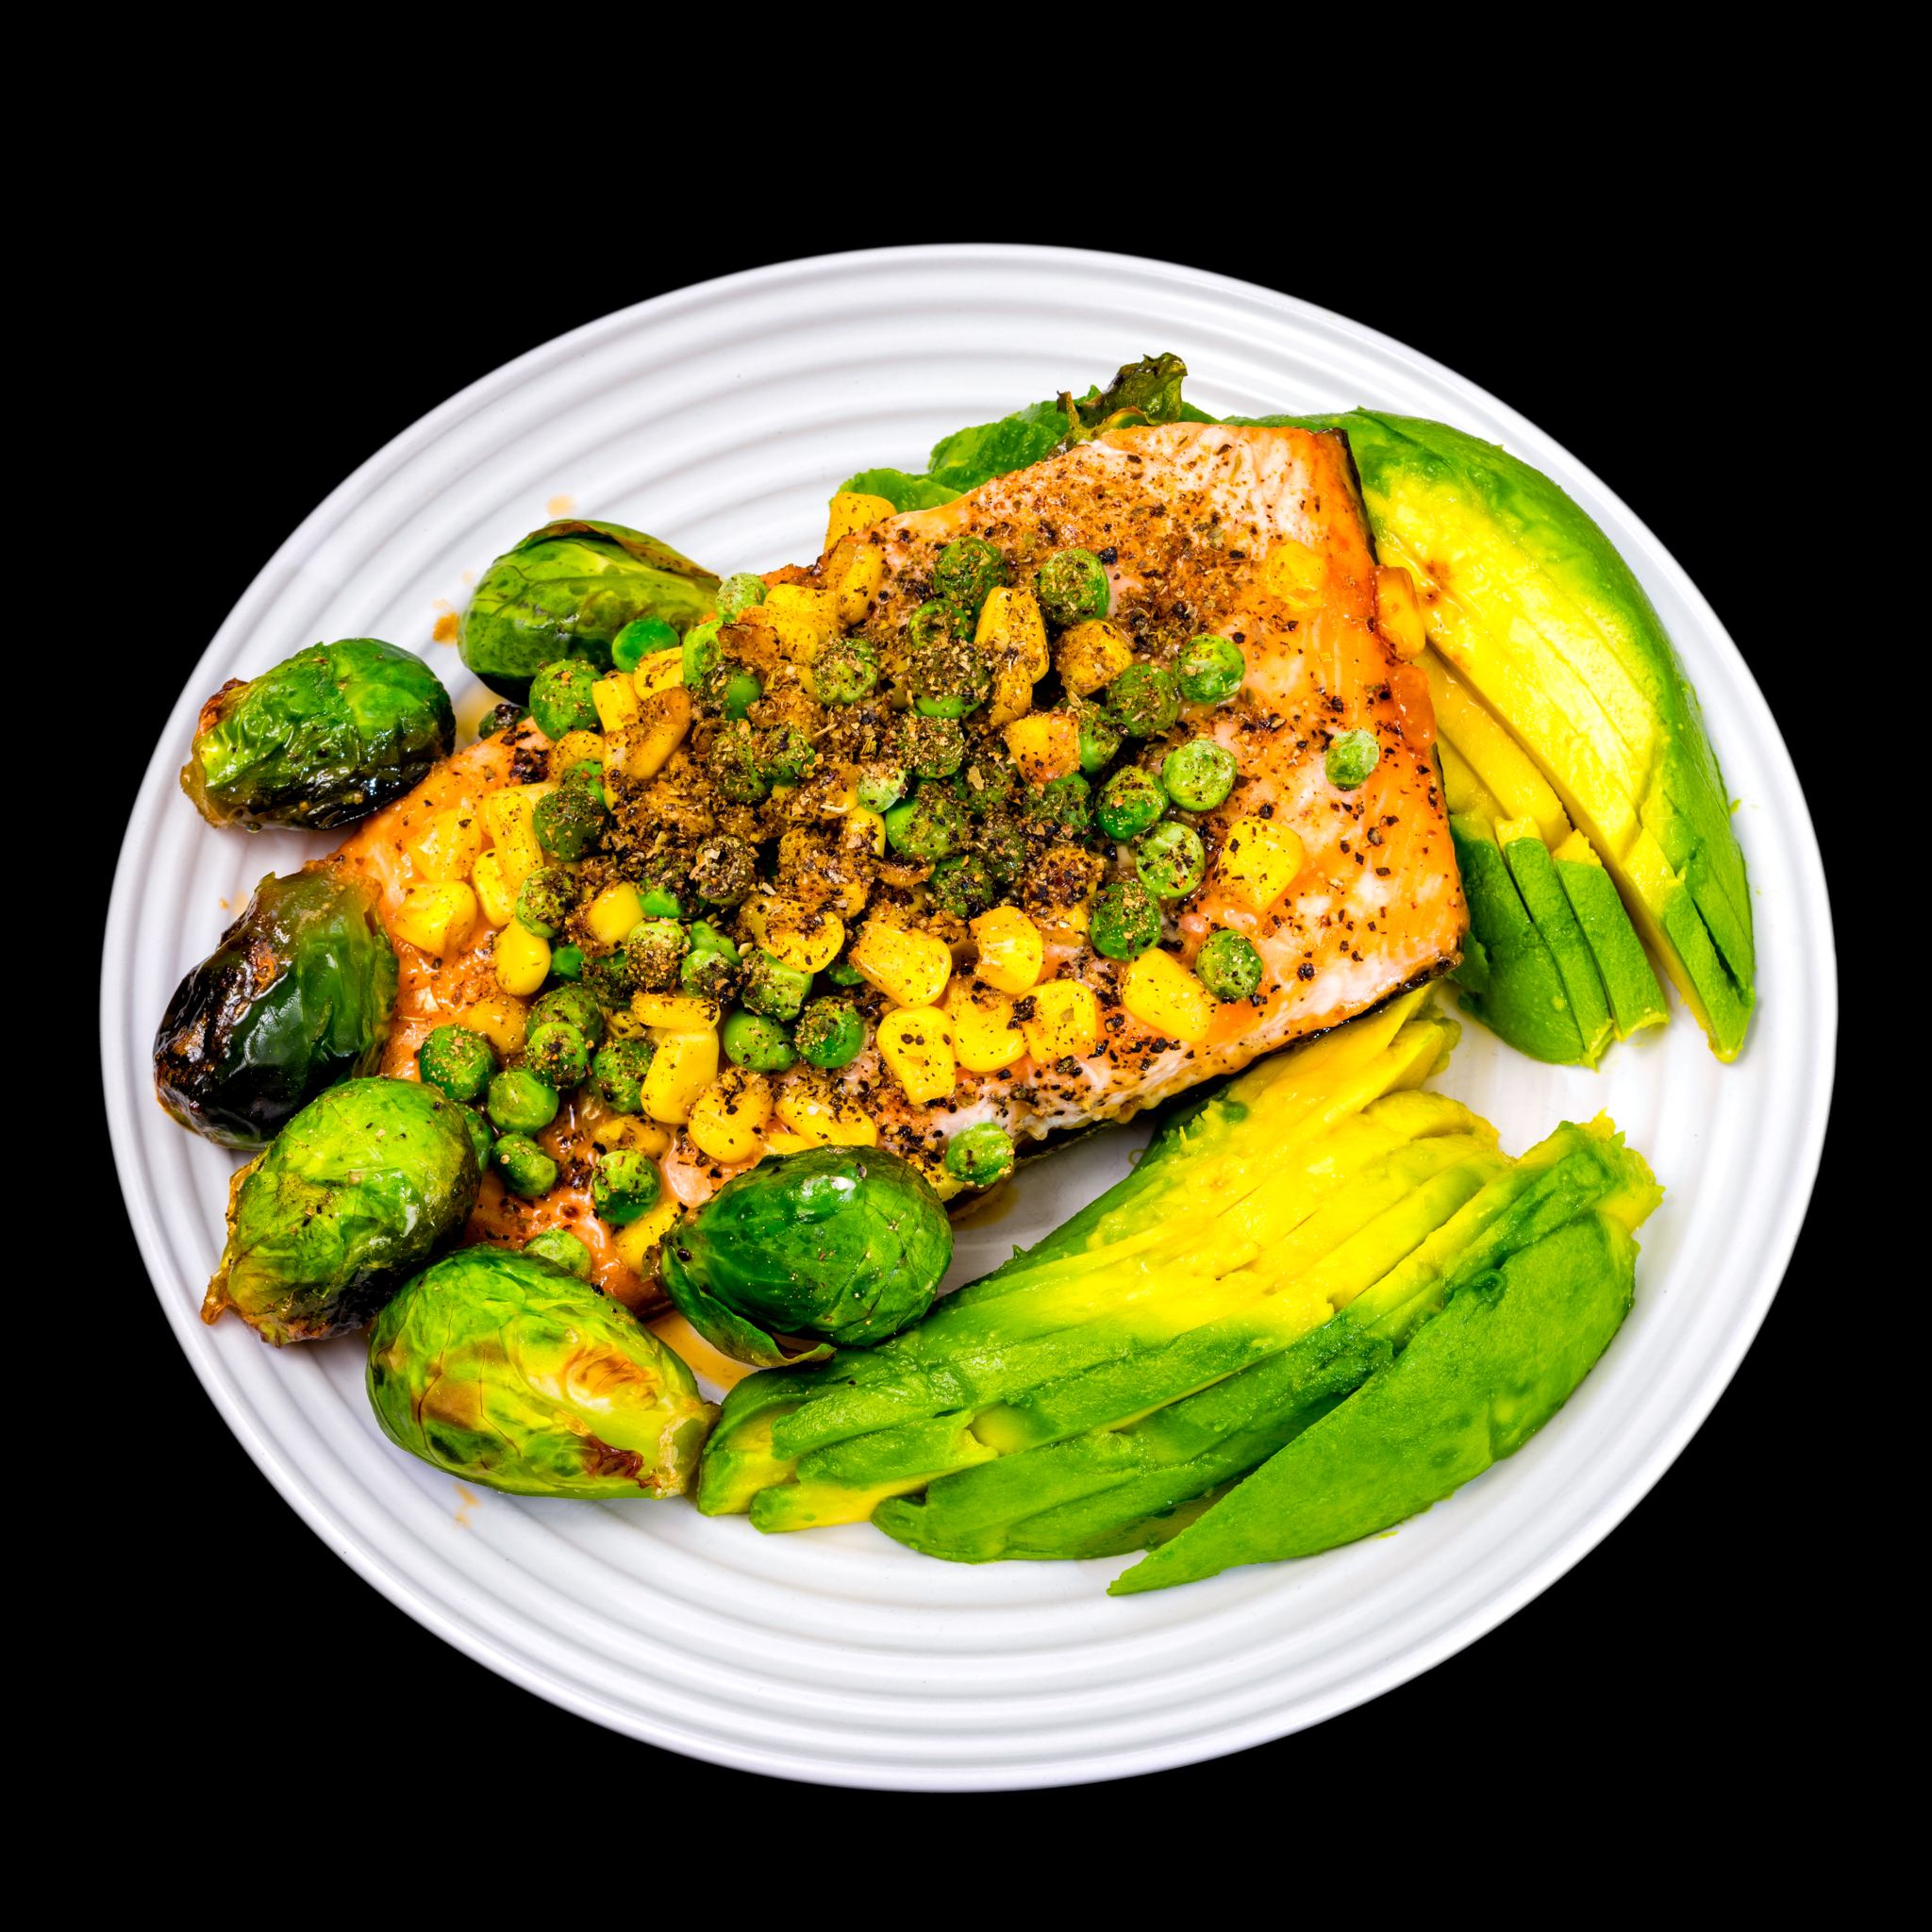 Honey soy baked salmon with vegetables including Brussels sprouts and avocado